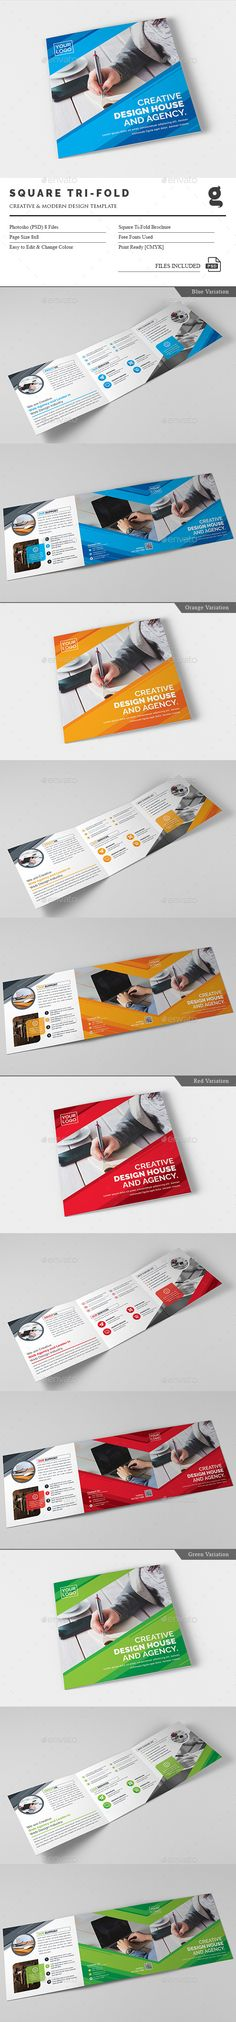 Pro Tri-Fold Brochure Template PSD. Download here: http://graphicriver.net/item/pro-trifold-brochure/16399765?ref=ksioks